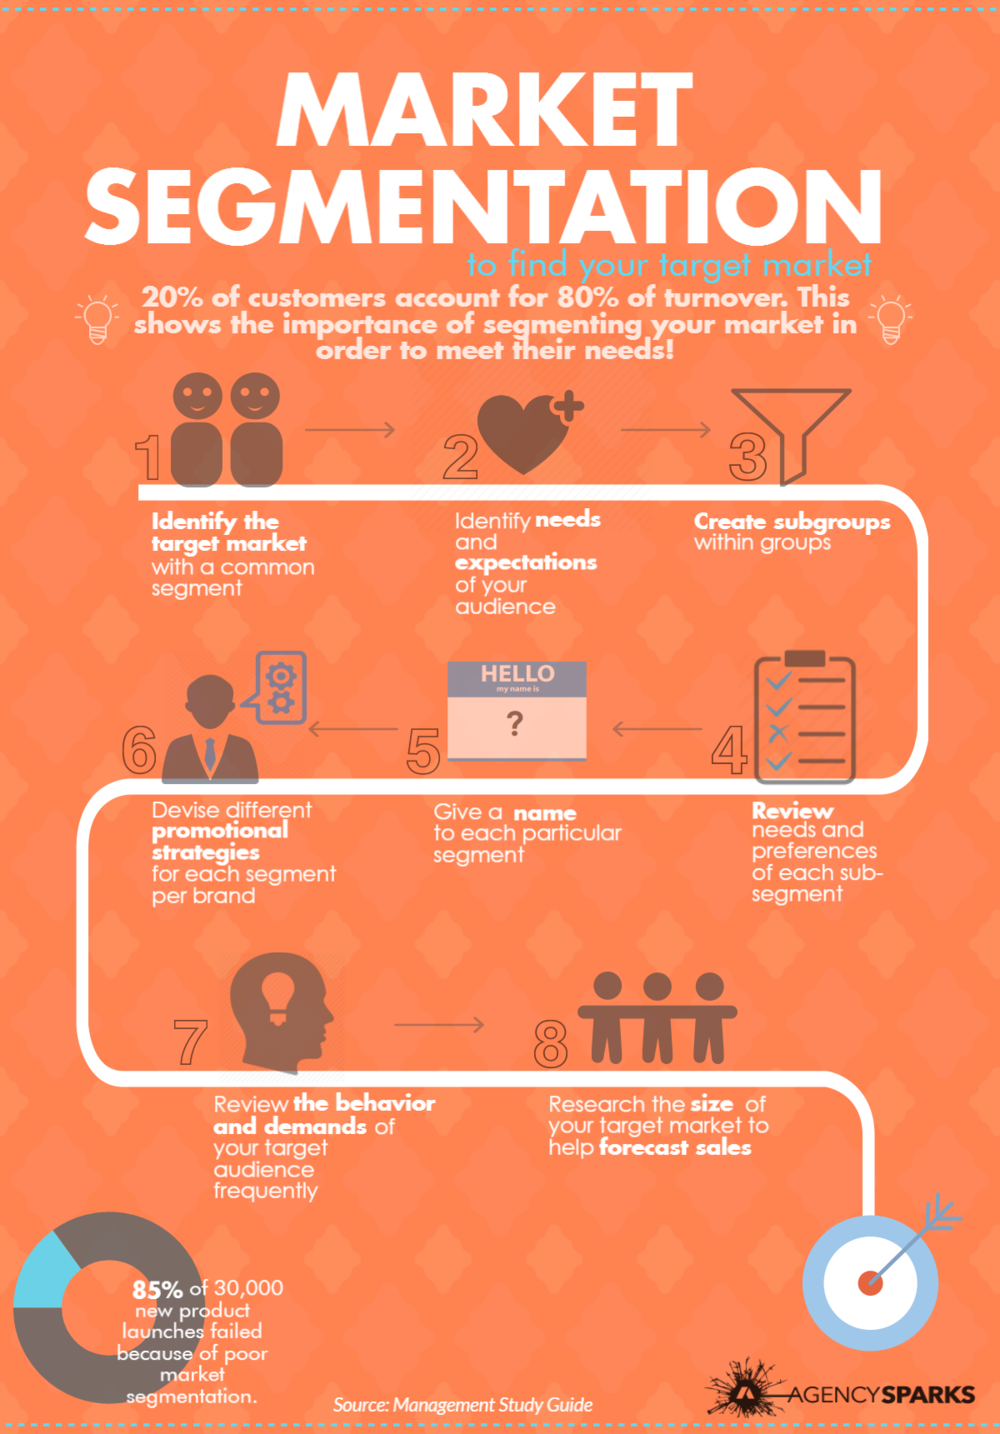 market segmentation project guidelines Here are a few practical tips about what you should see in a market segmentation proposal if you see these things, it tells you that this proposal is from an experienced market research firm that understands how to mitigate the risks specific to segmentation projects.